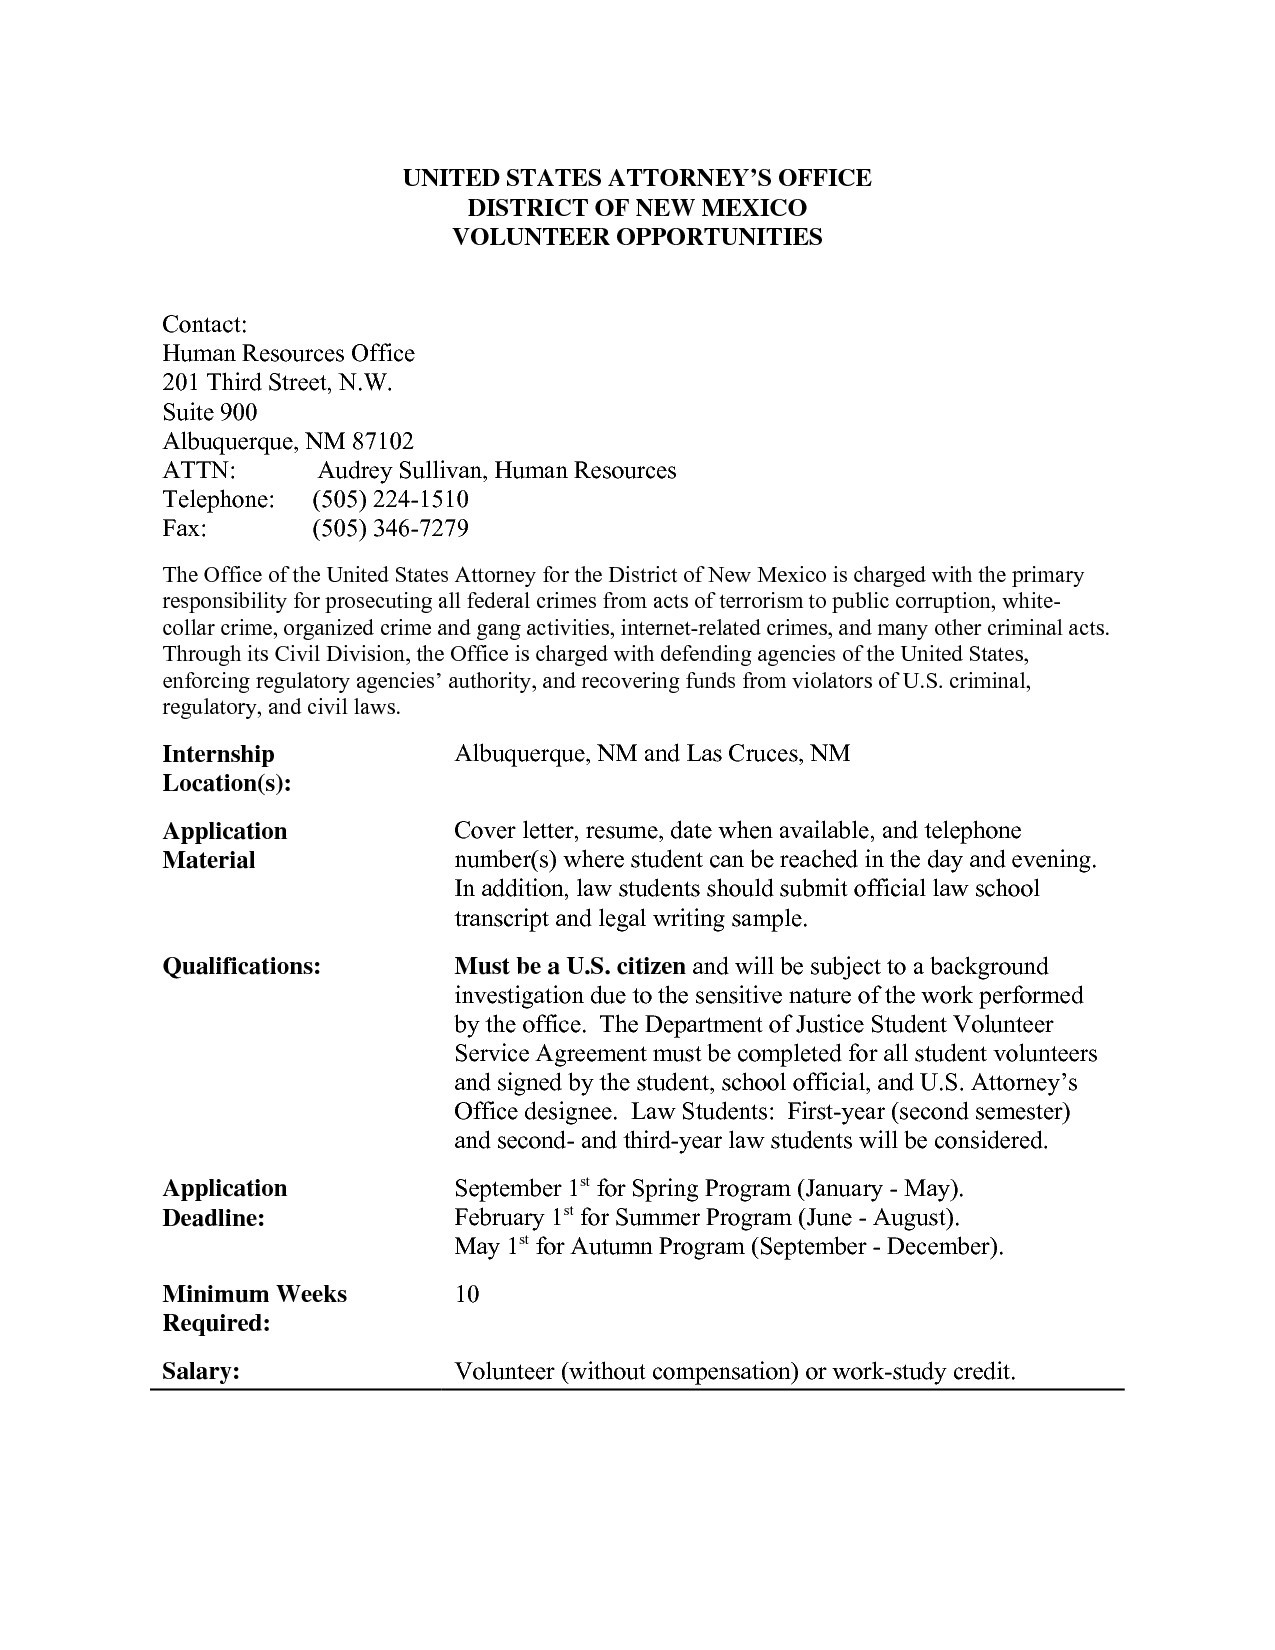 College Application Resume Template Free - Resume format for Mba Save Unique Sample College Application Resume